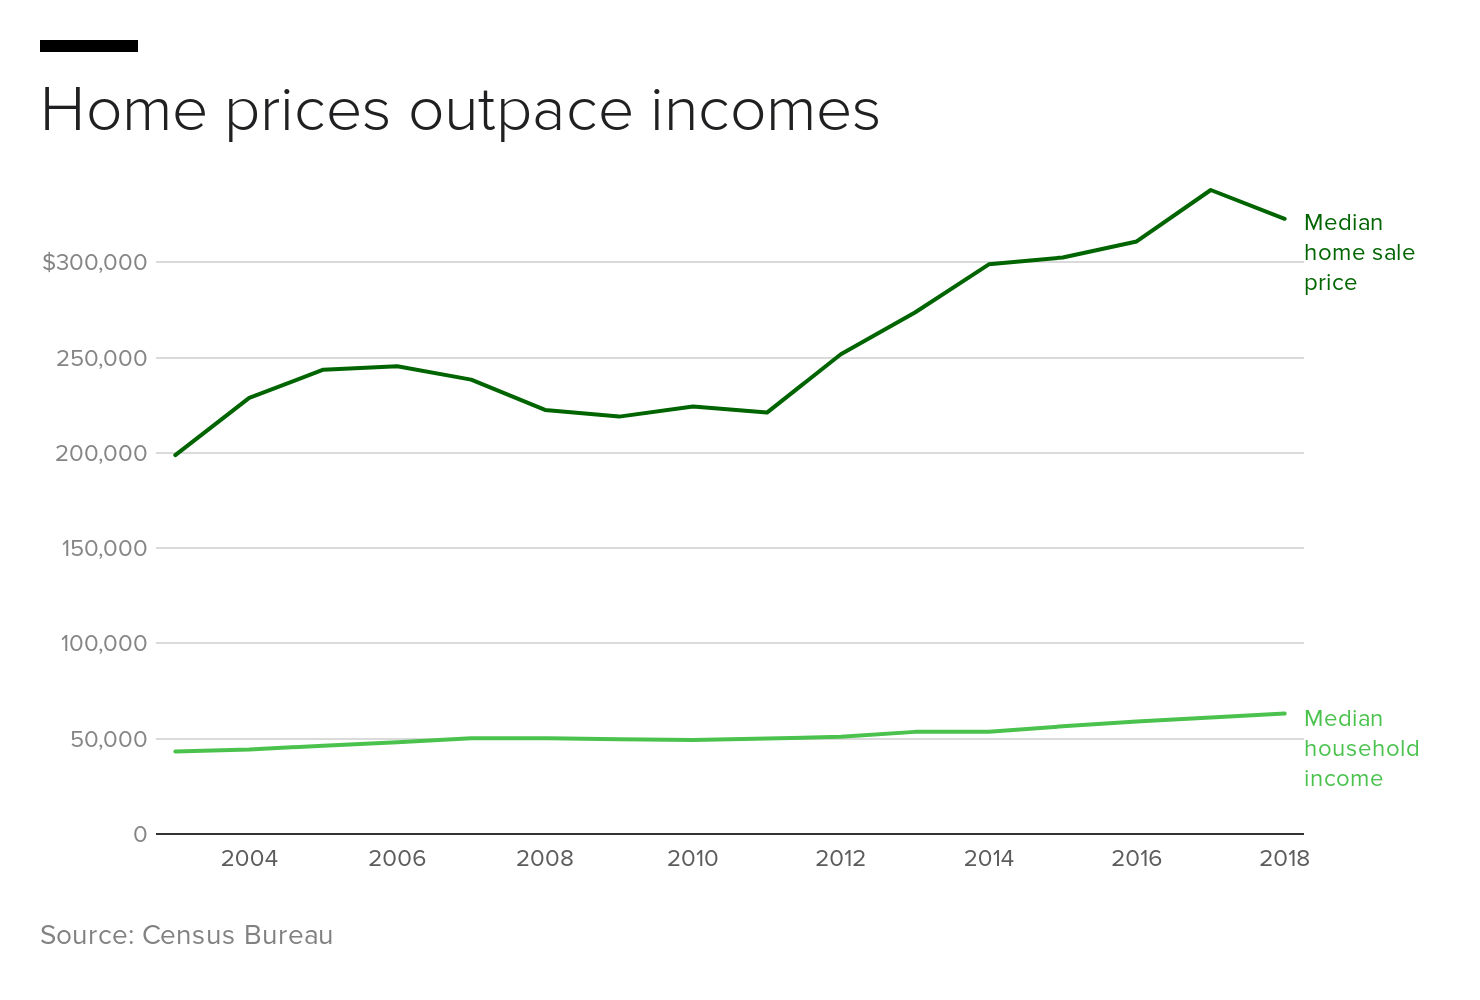 ykdvp-home-prices-outpace-incomes.png